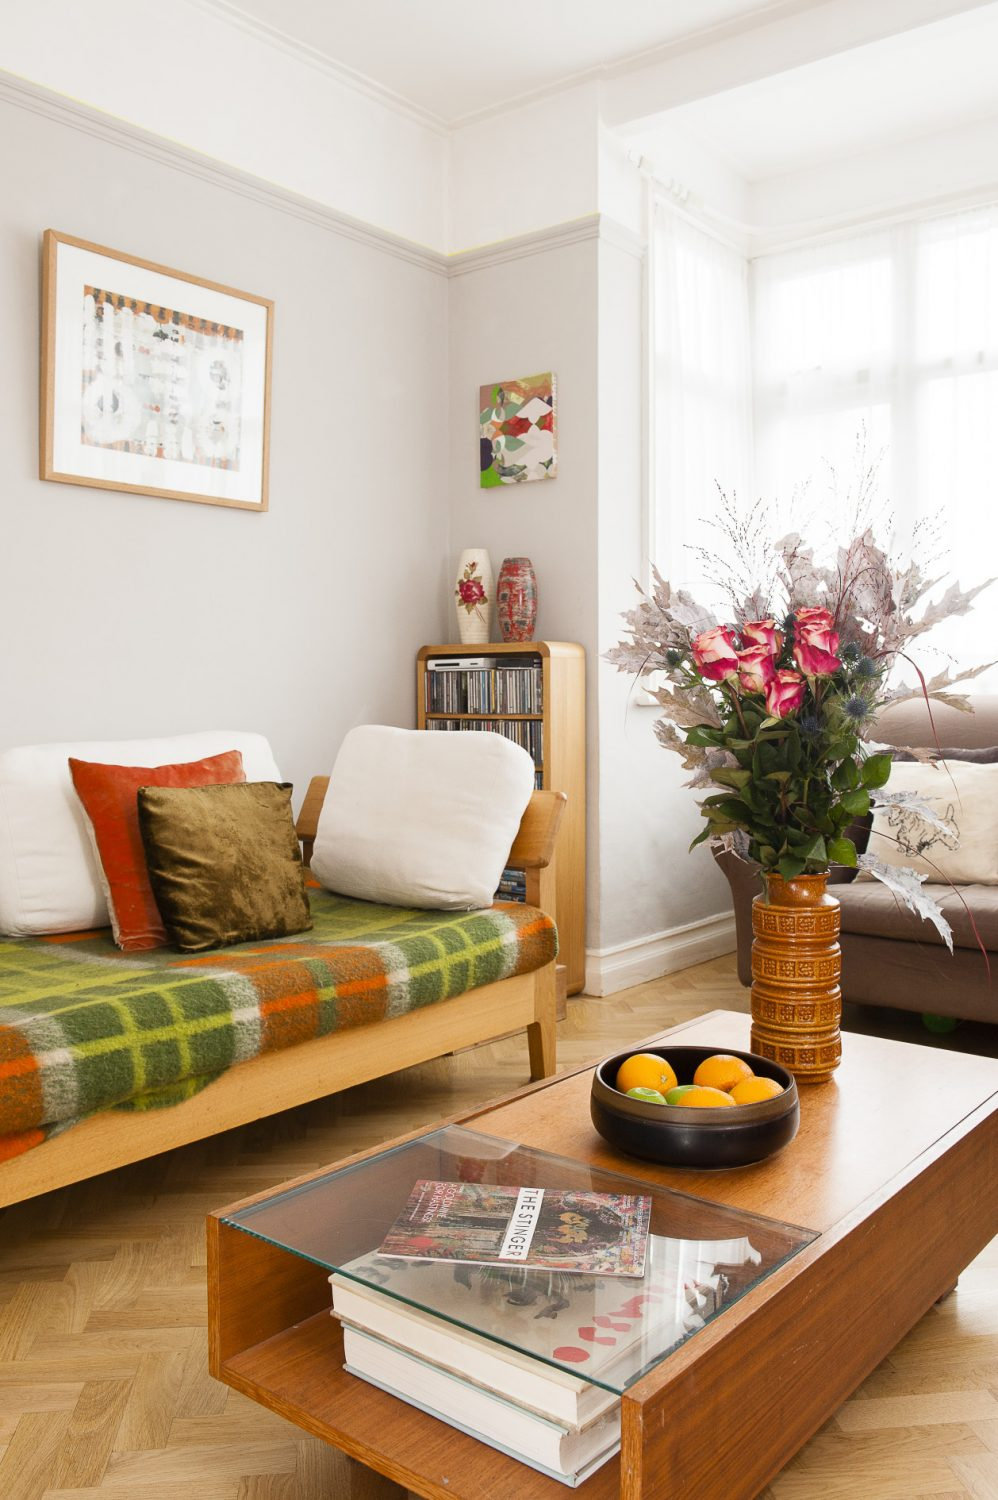 The half-glass coffee table is from Habitat as are the two sofas